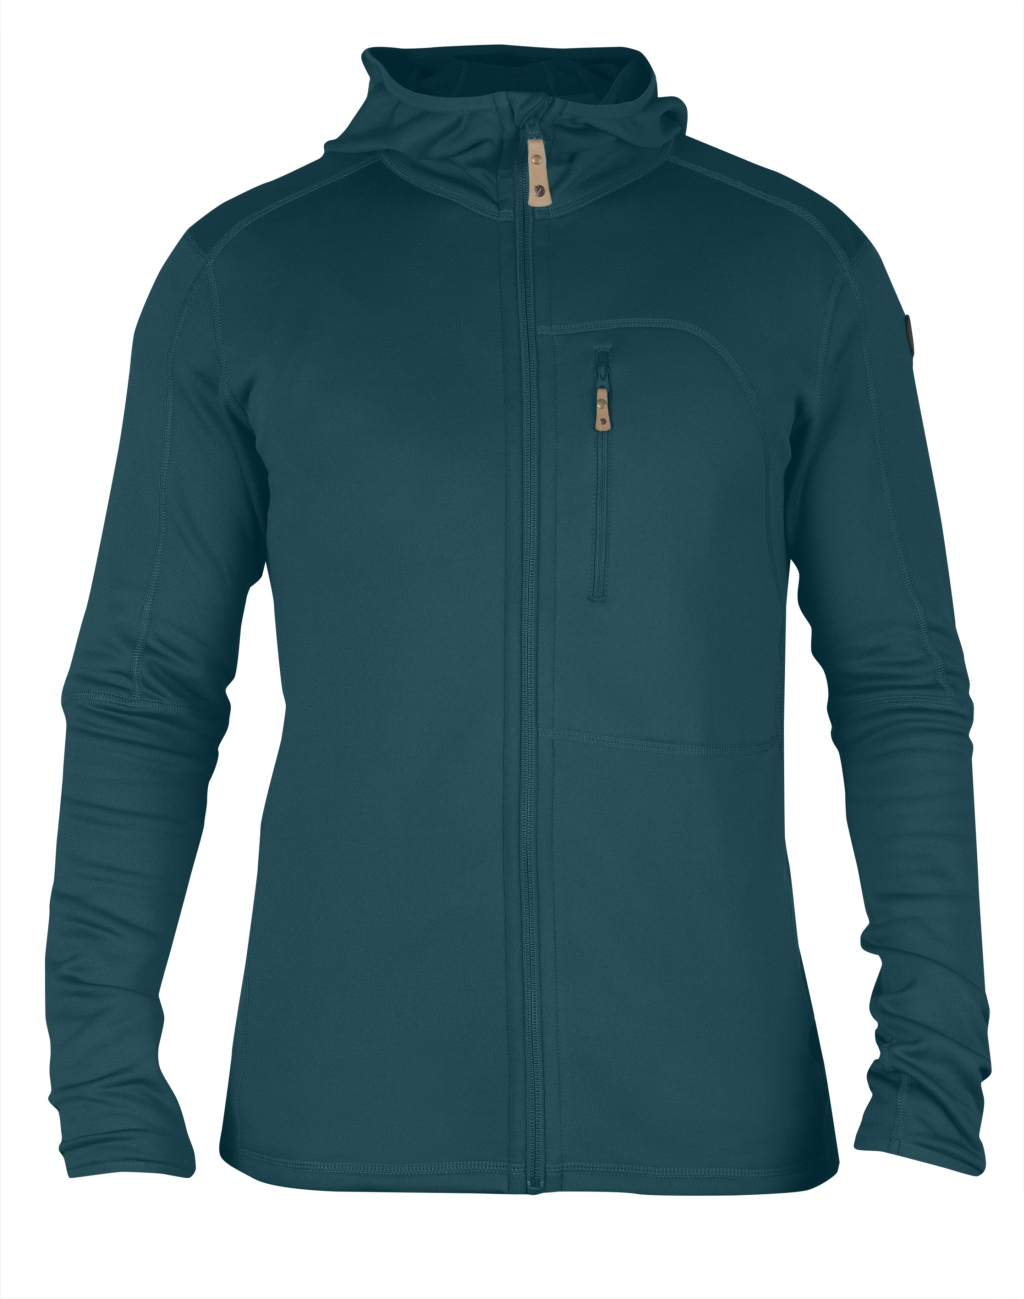 FjallRaven Keb Fleece Jacket Glacier Green-30